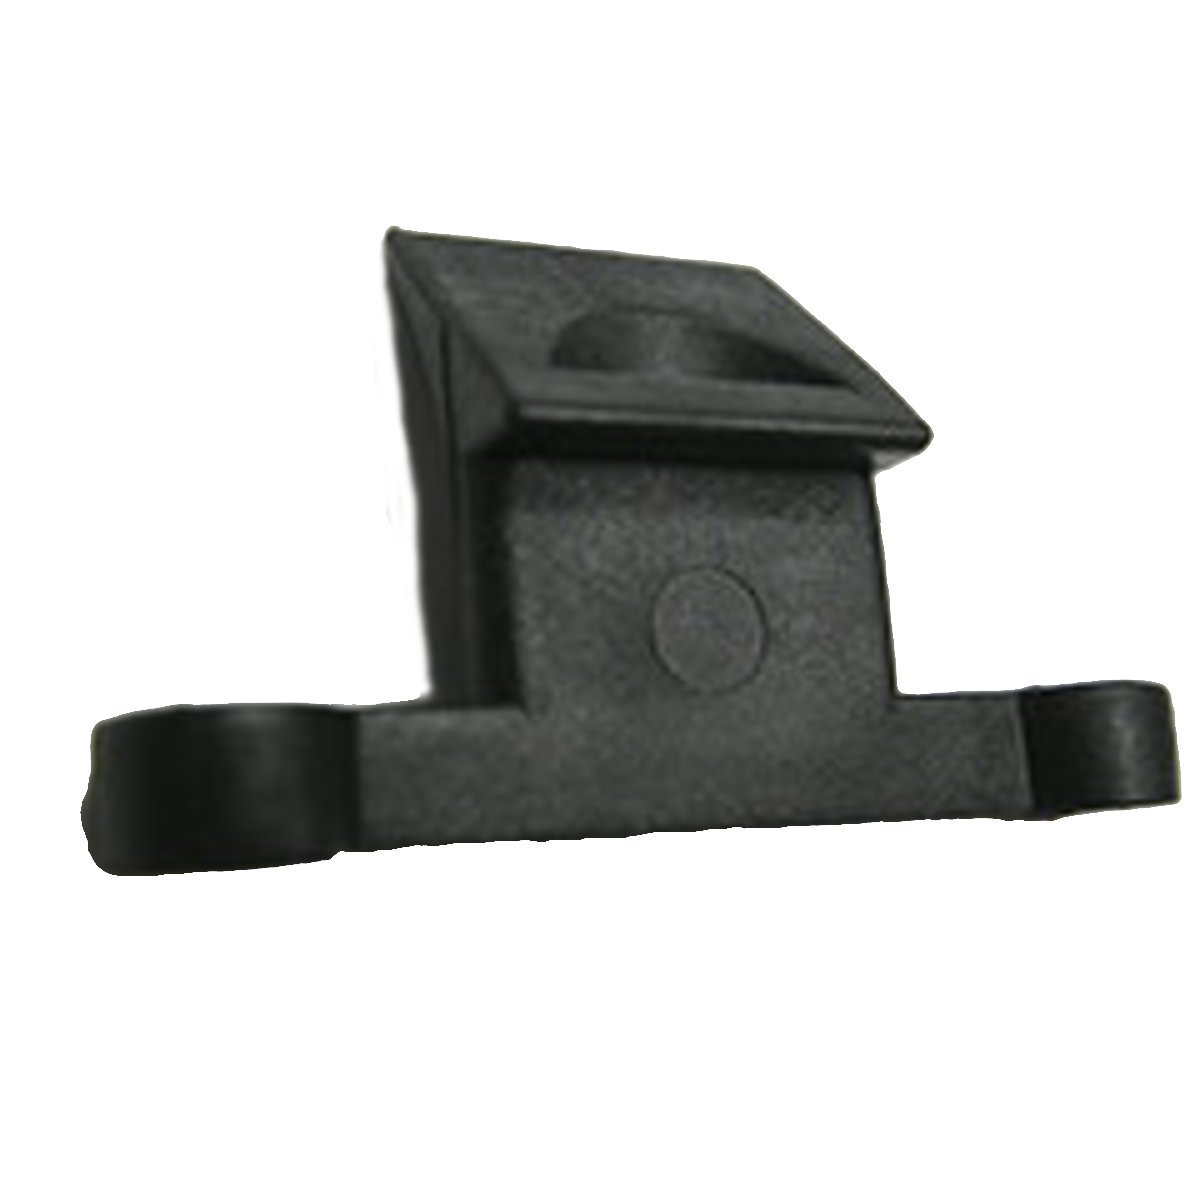 View larger image of Valken V-Max Paintball Loader Rear Latch Hook - Part P0014